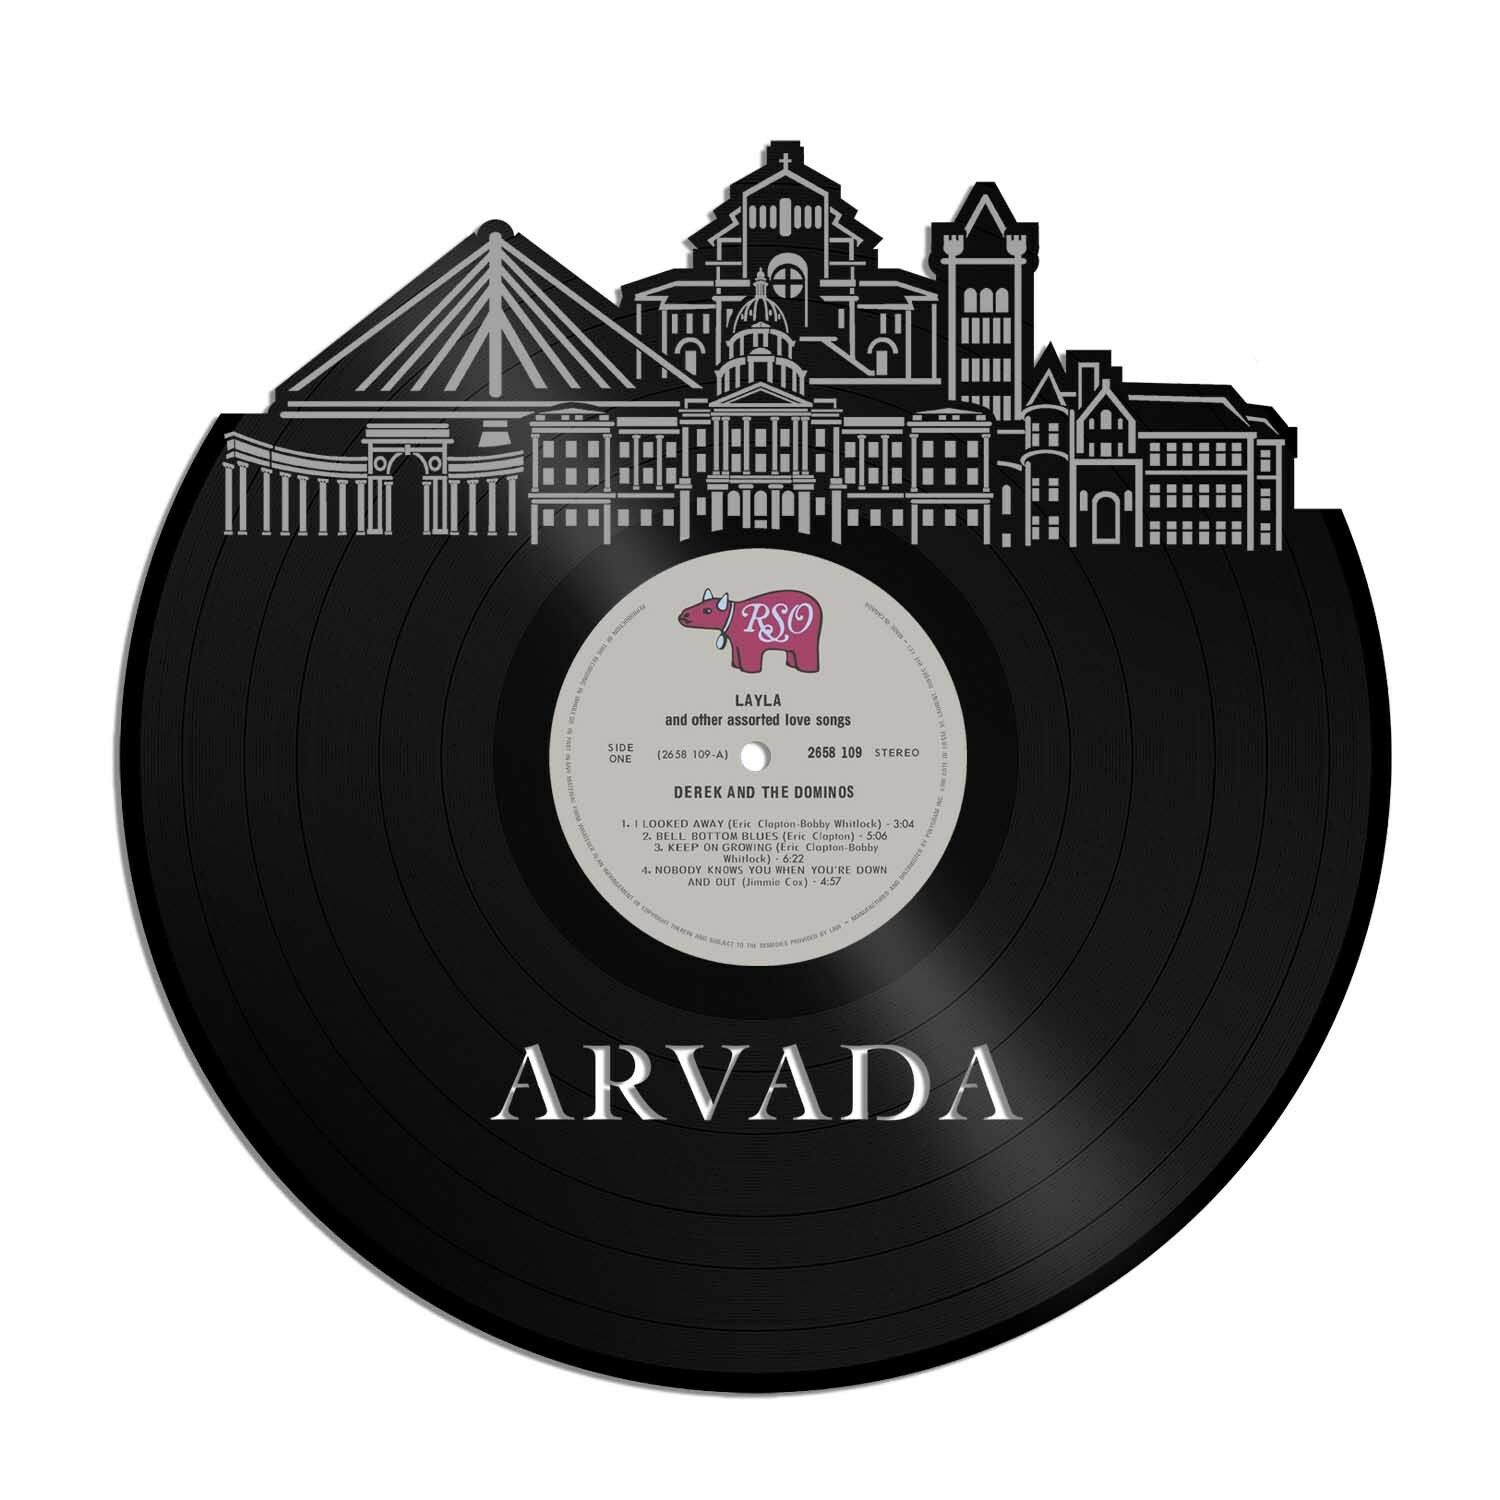 Arvada Co Vinyl Wall Art Cityscape Souvenir Anniversary Home Room Decoration